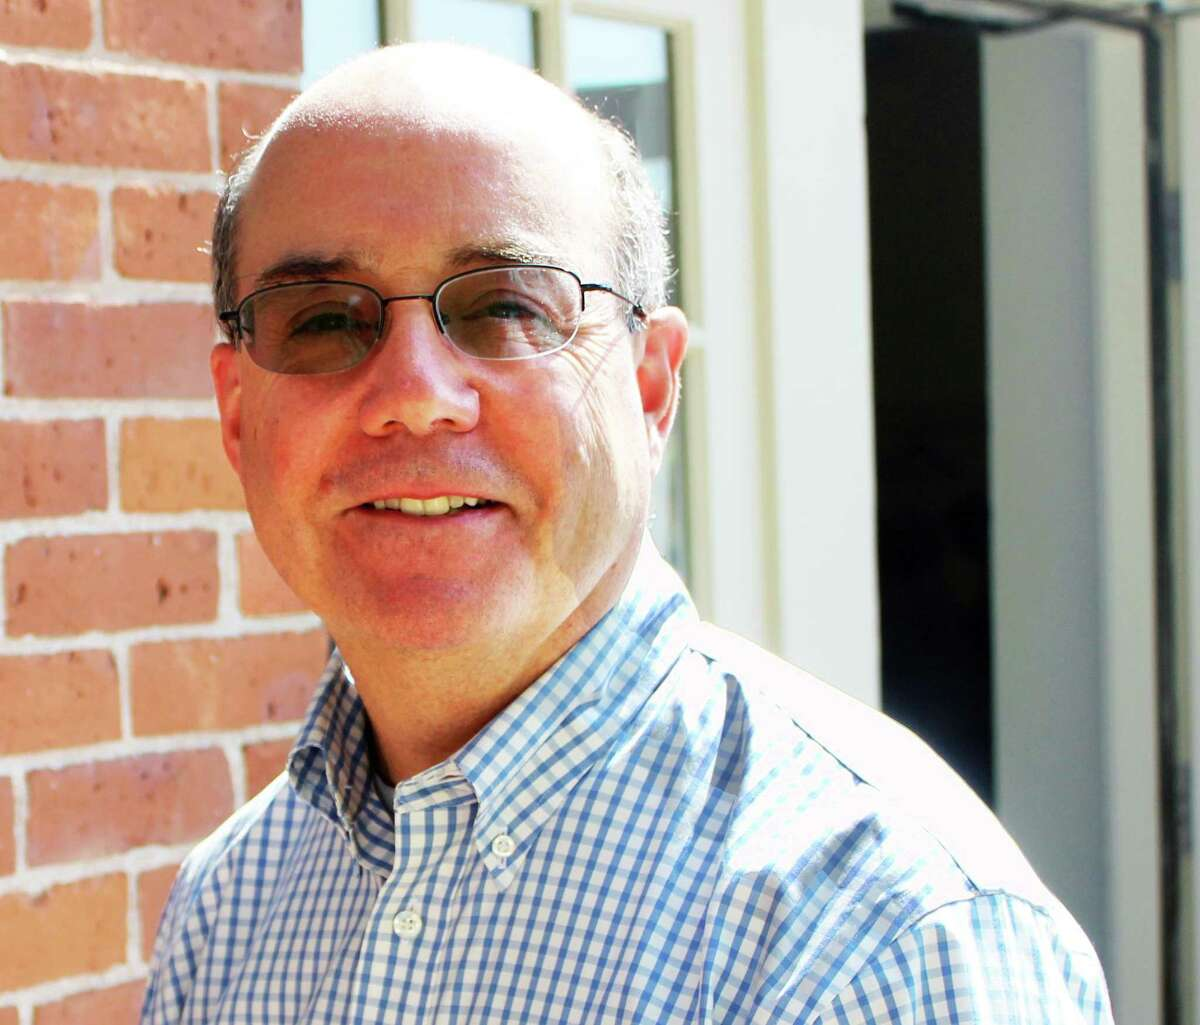 The Middlesex United Way has chosen William Holder as its new campaign chairman.